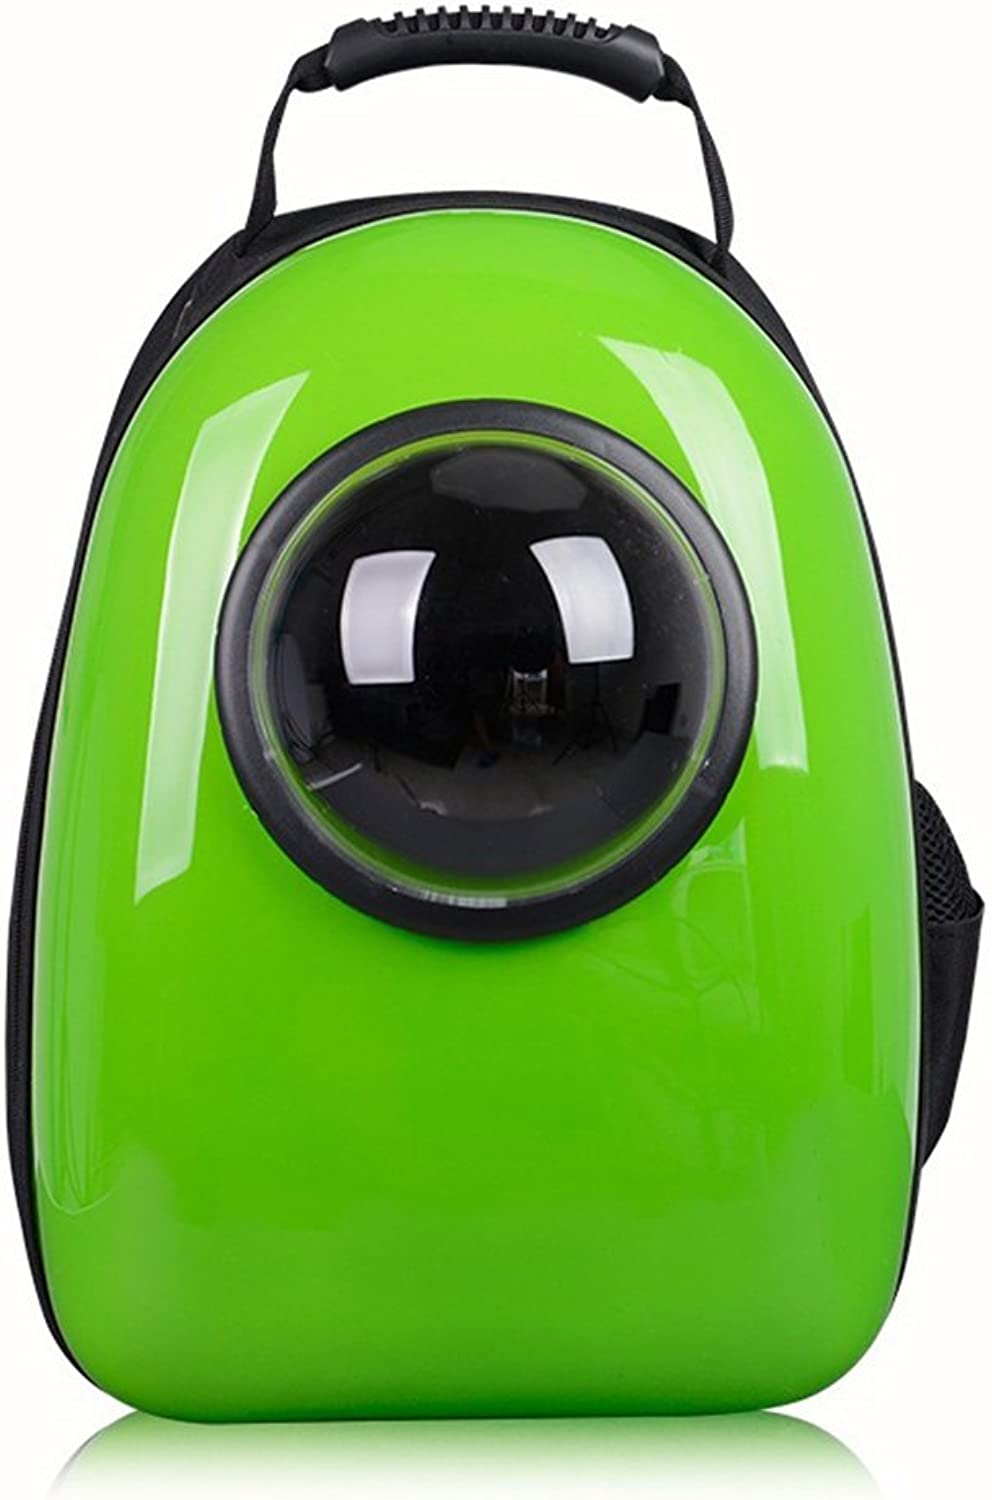 Asdflina Pet Dogs Cats Carriers Pure color Breathable Pet Space Capsule Cat Dog Backpack Breathable Dog Out Portable Portable Bag. Portable For Travelling Shopping (color   Green)